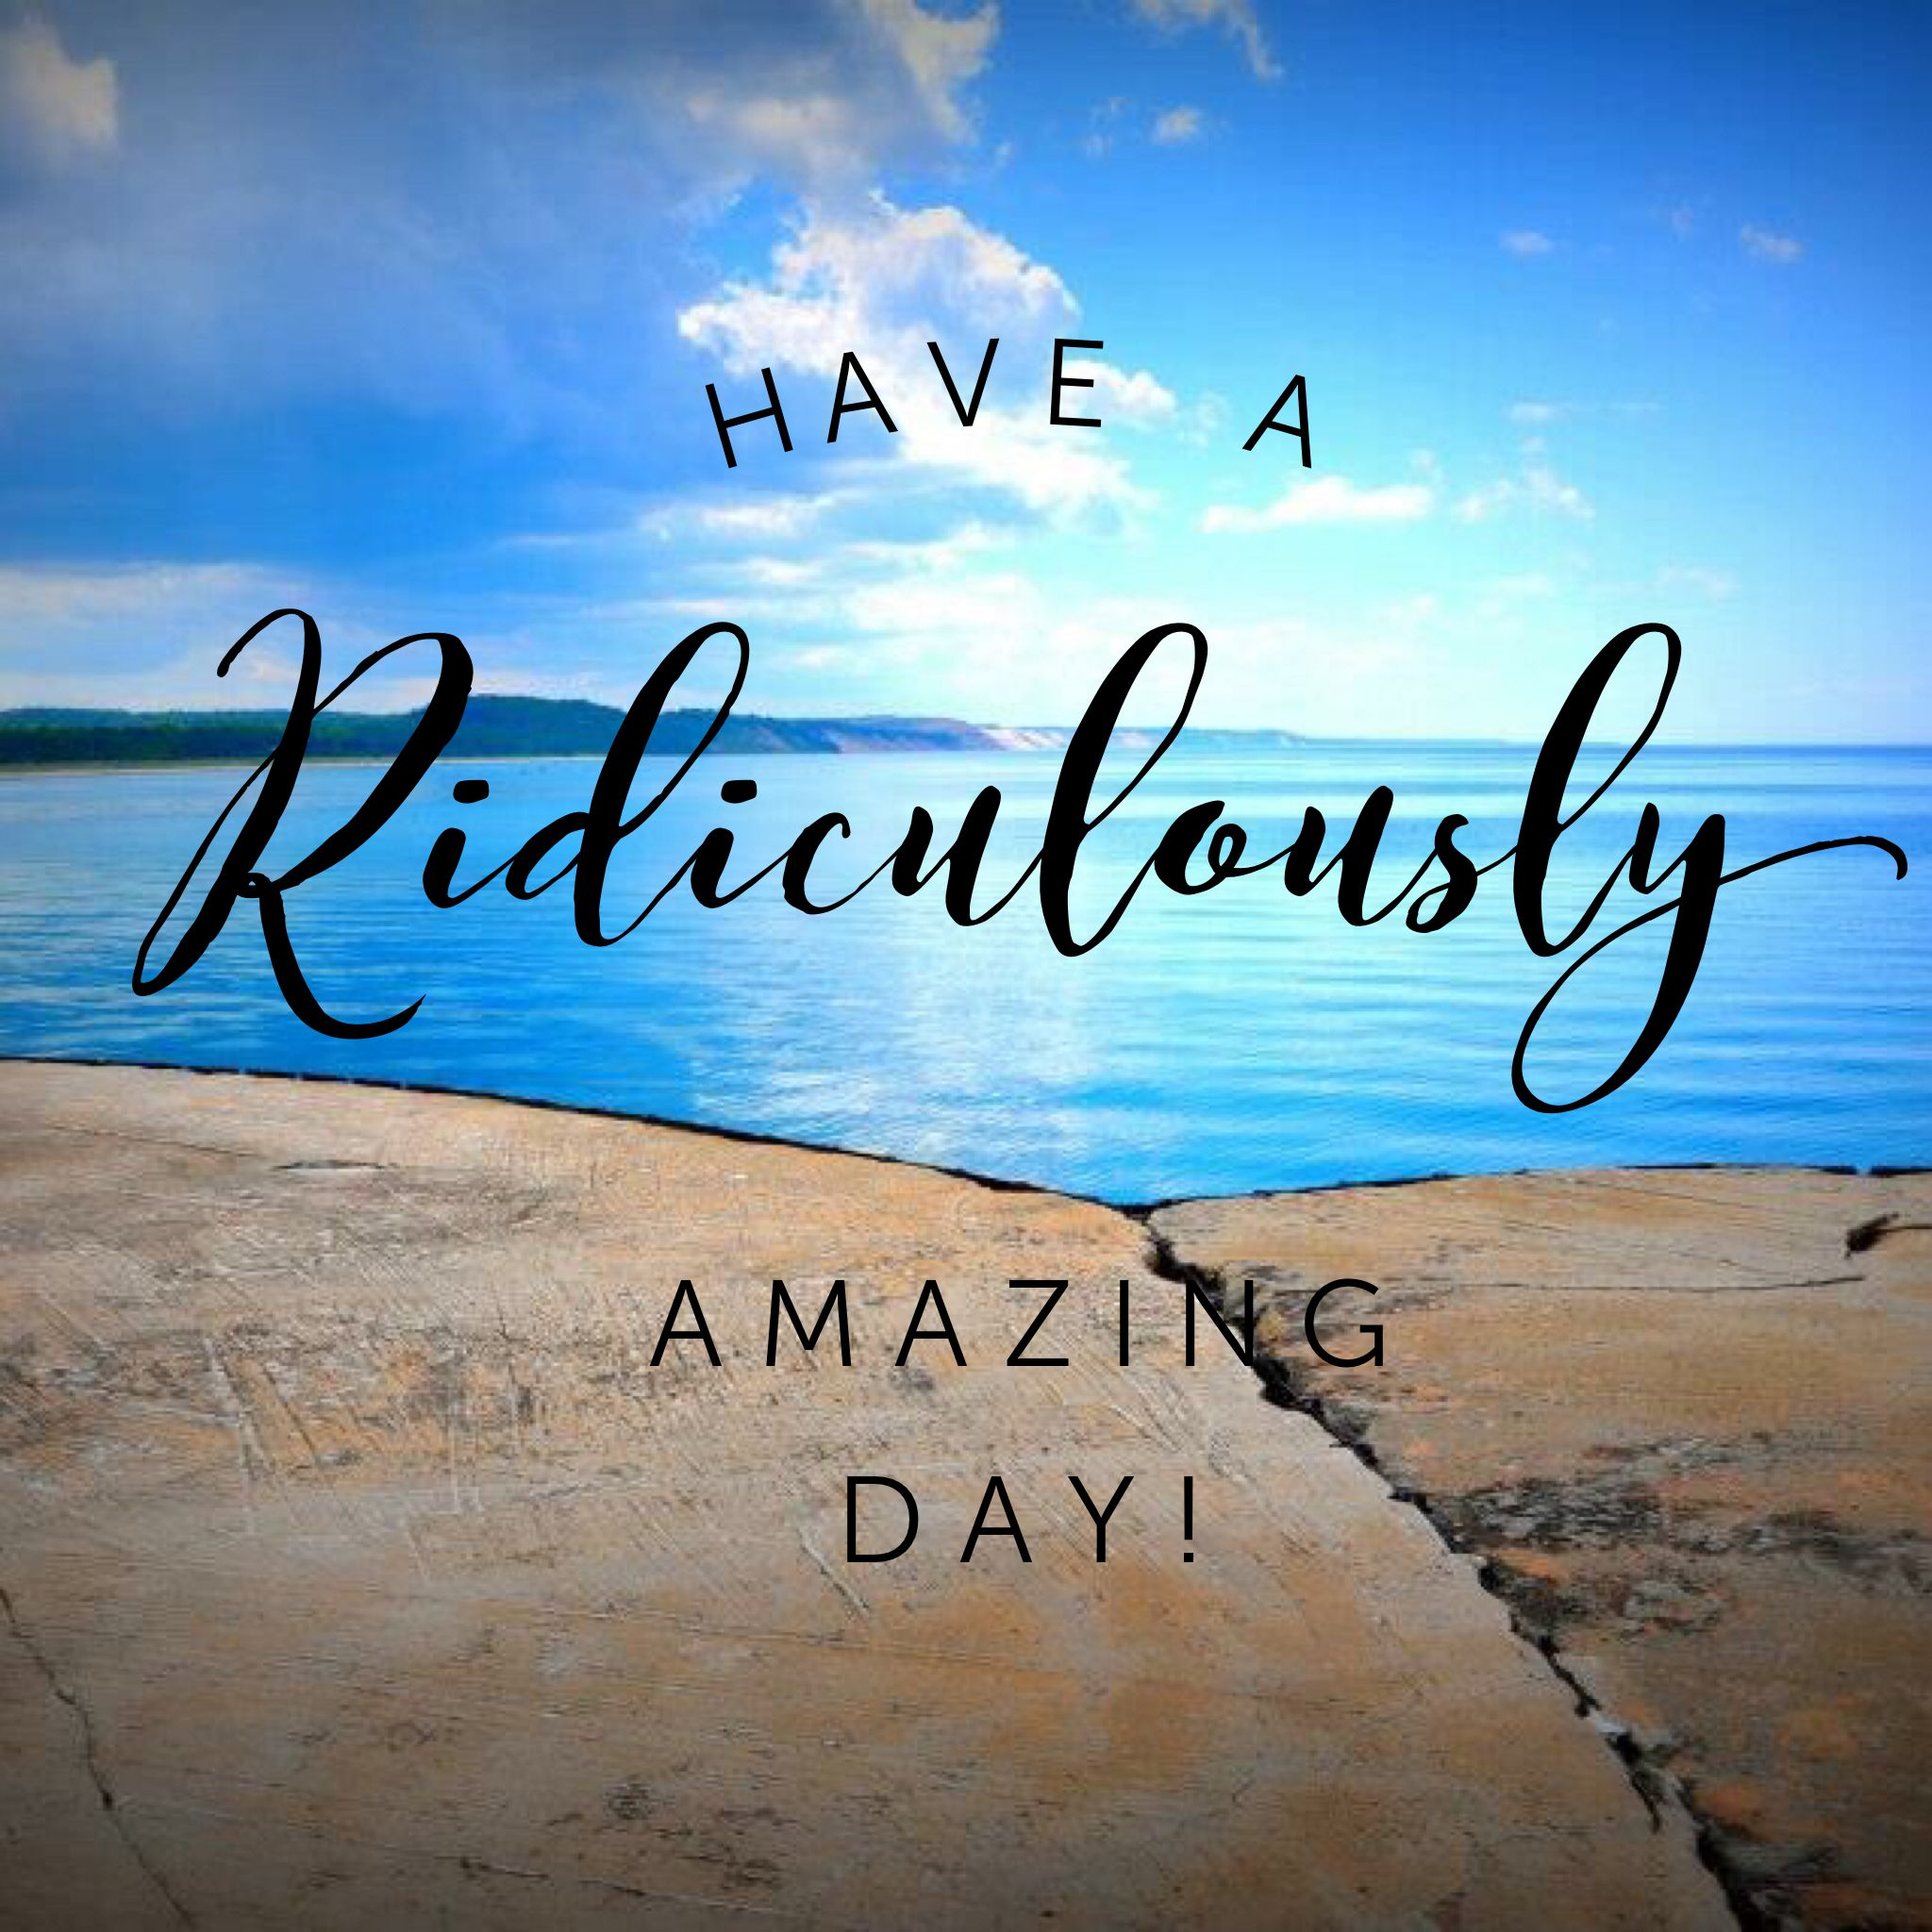 Have a ridiculously AMAZING day! #GreatDay #Quotes #Monday  Life